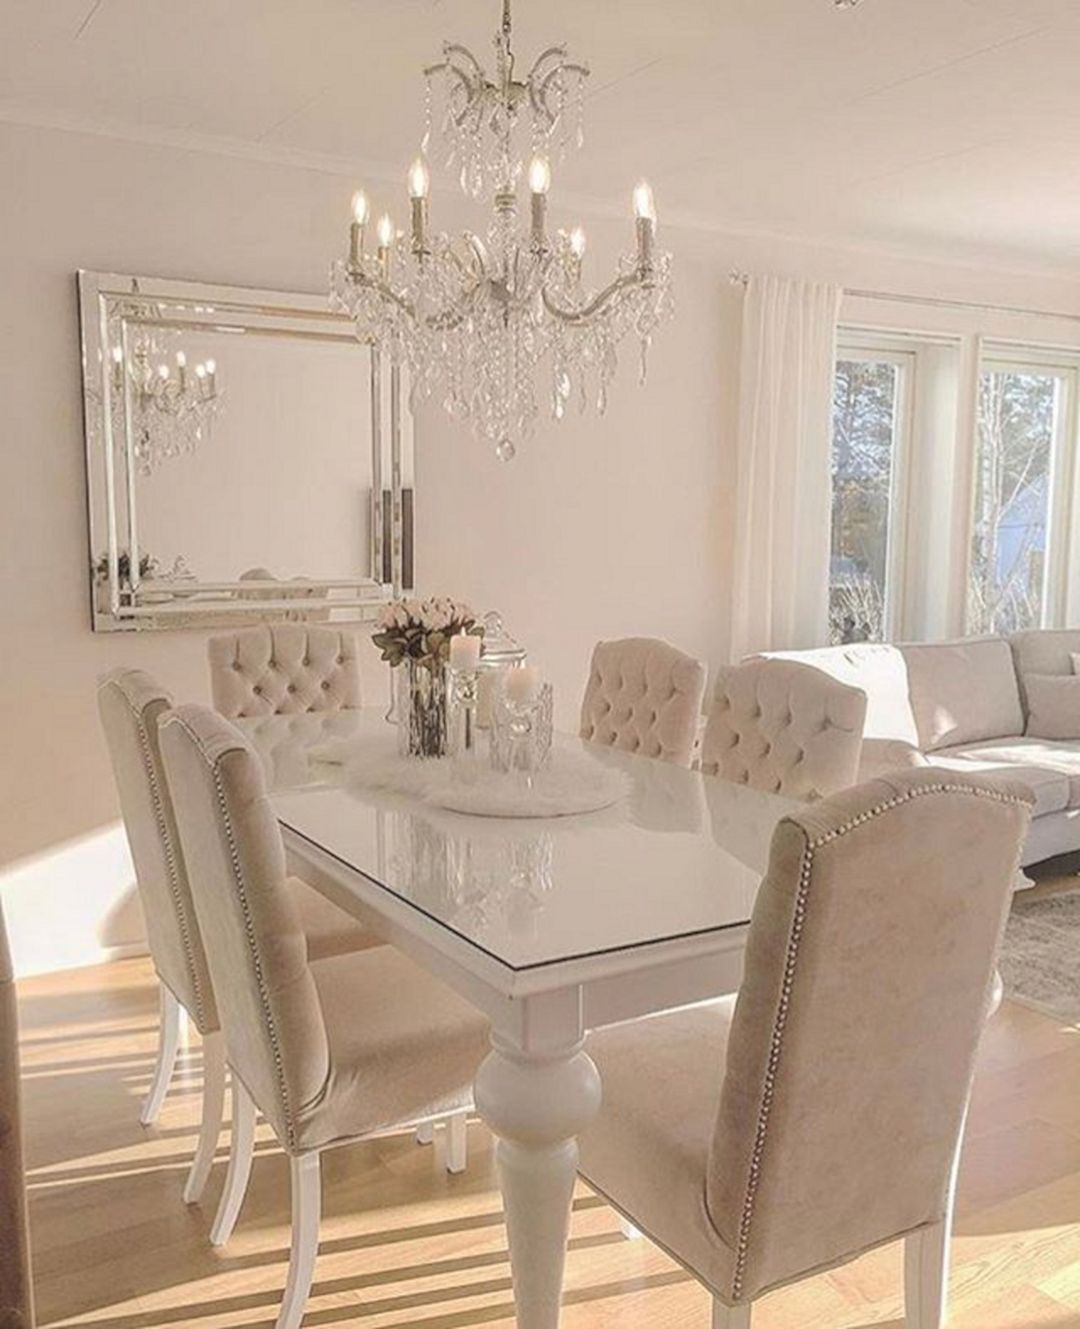 Pin By Swankylike On Dining Room In 2021 Luxury Dining Room Beautiful Dining Rooms Dining Room Cozy